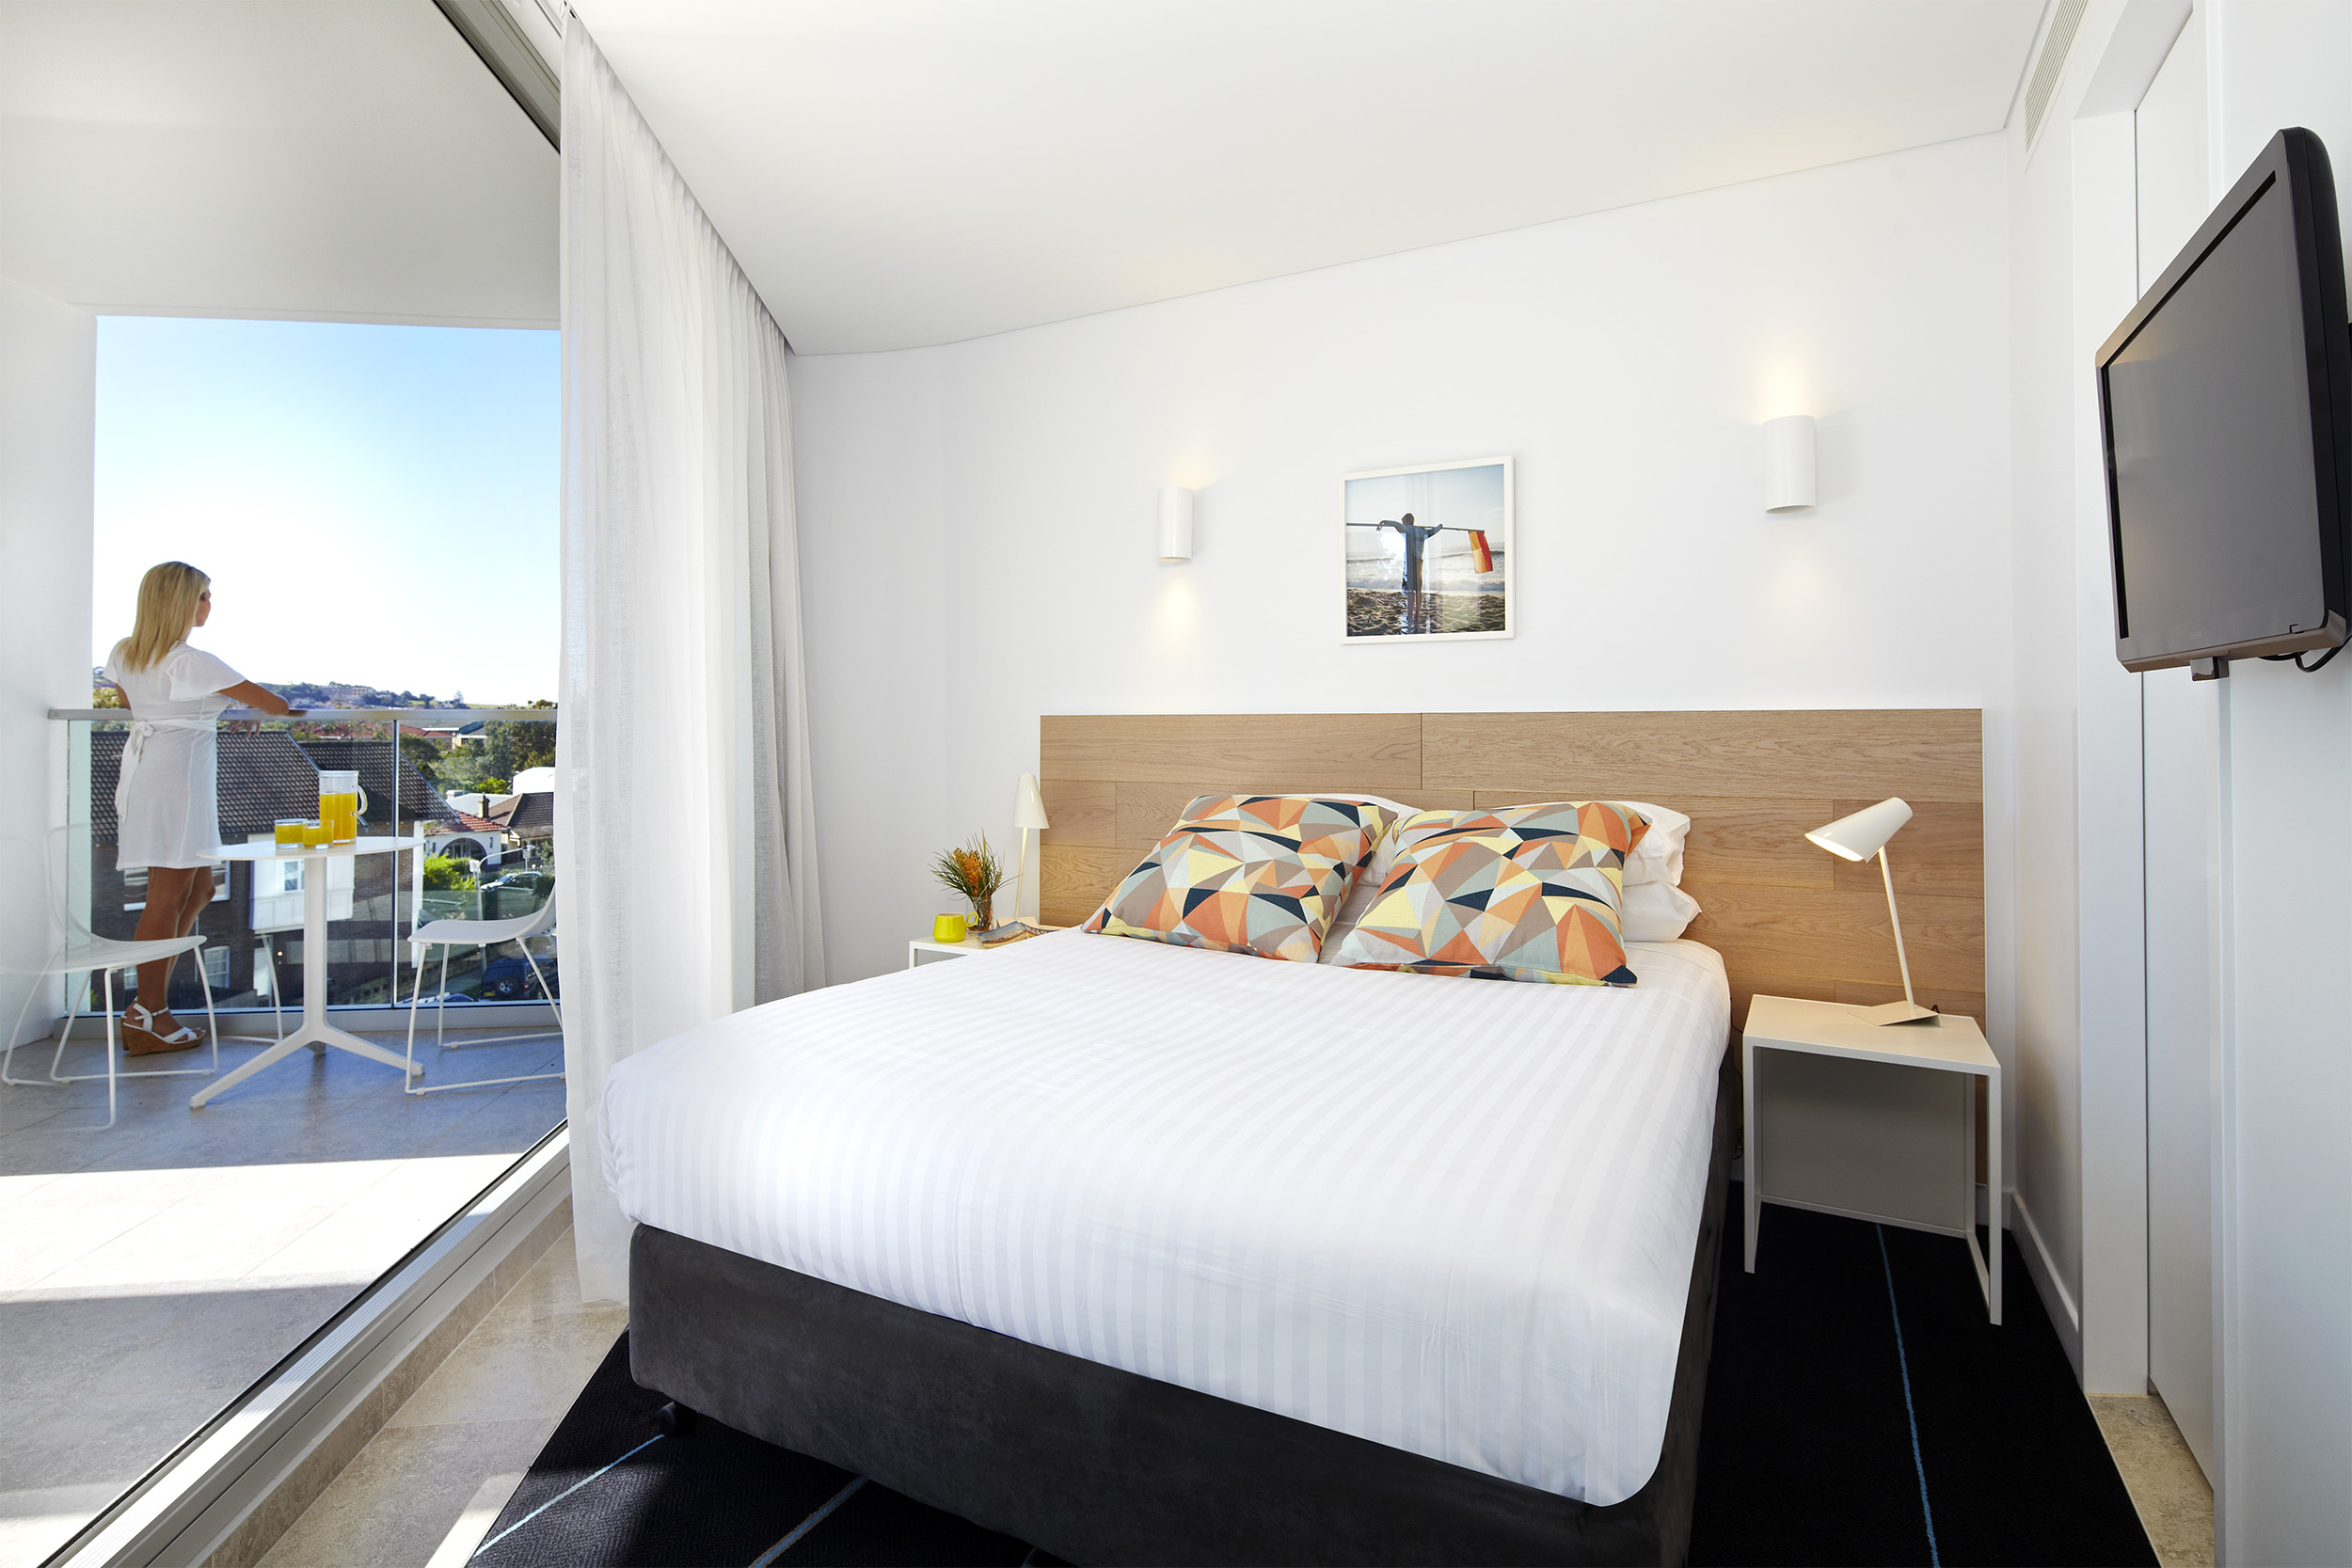 Adina Apartment Hotel Bondi Beach Logo and Images